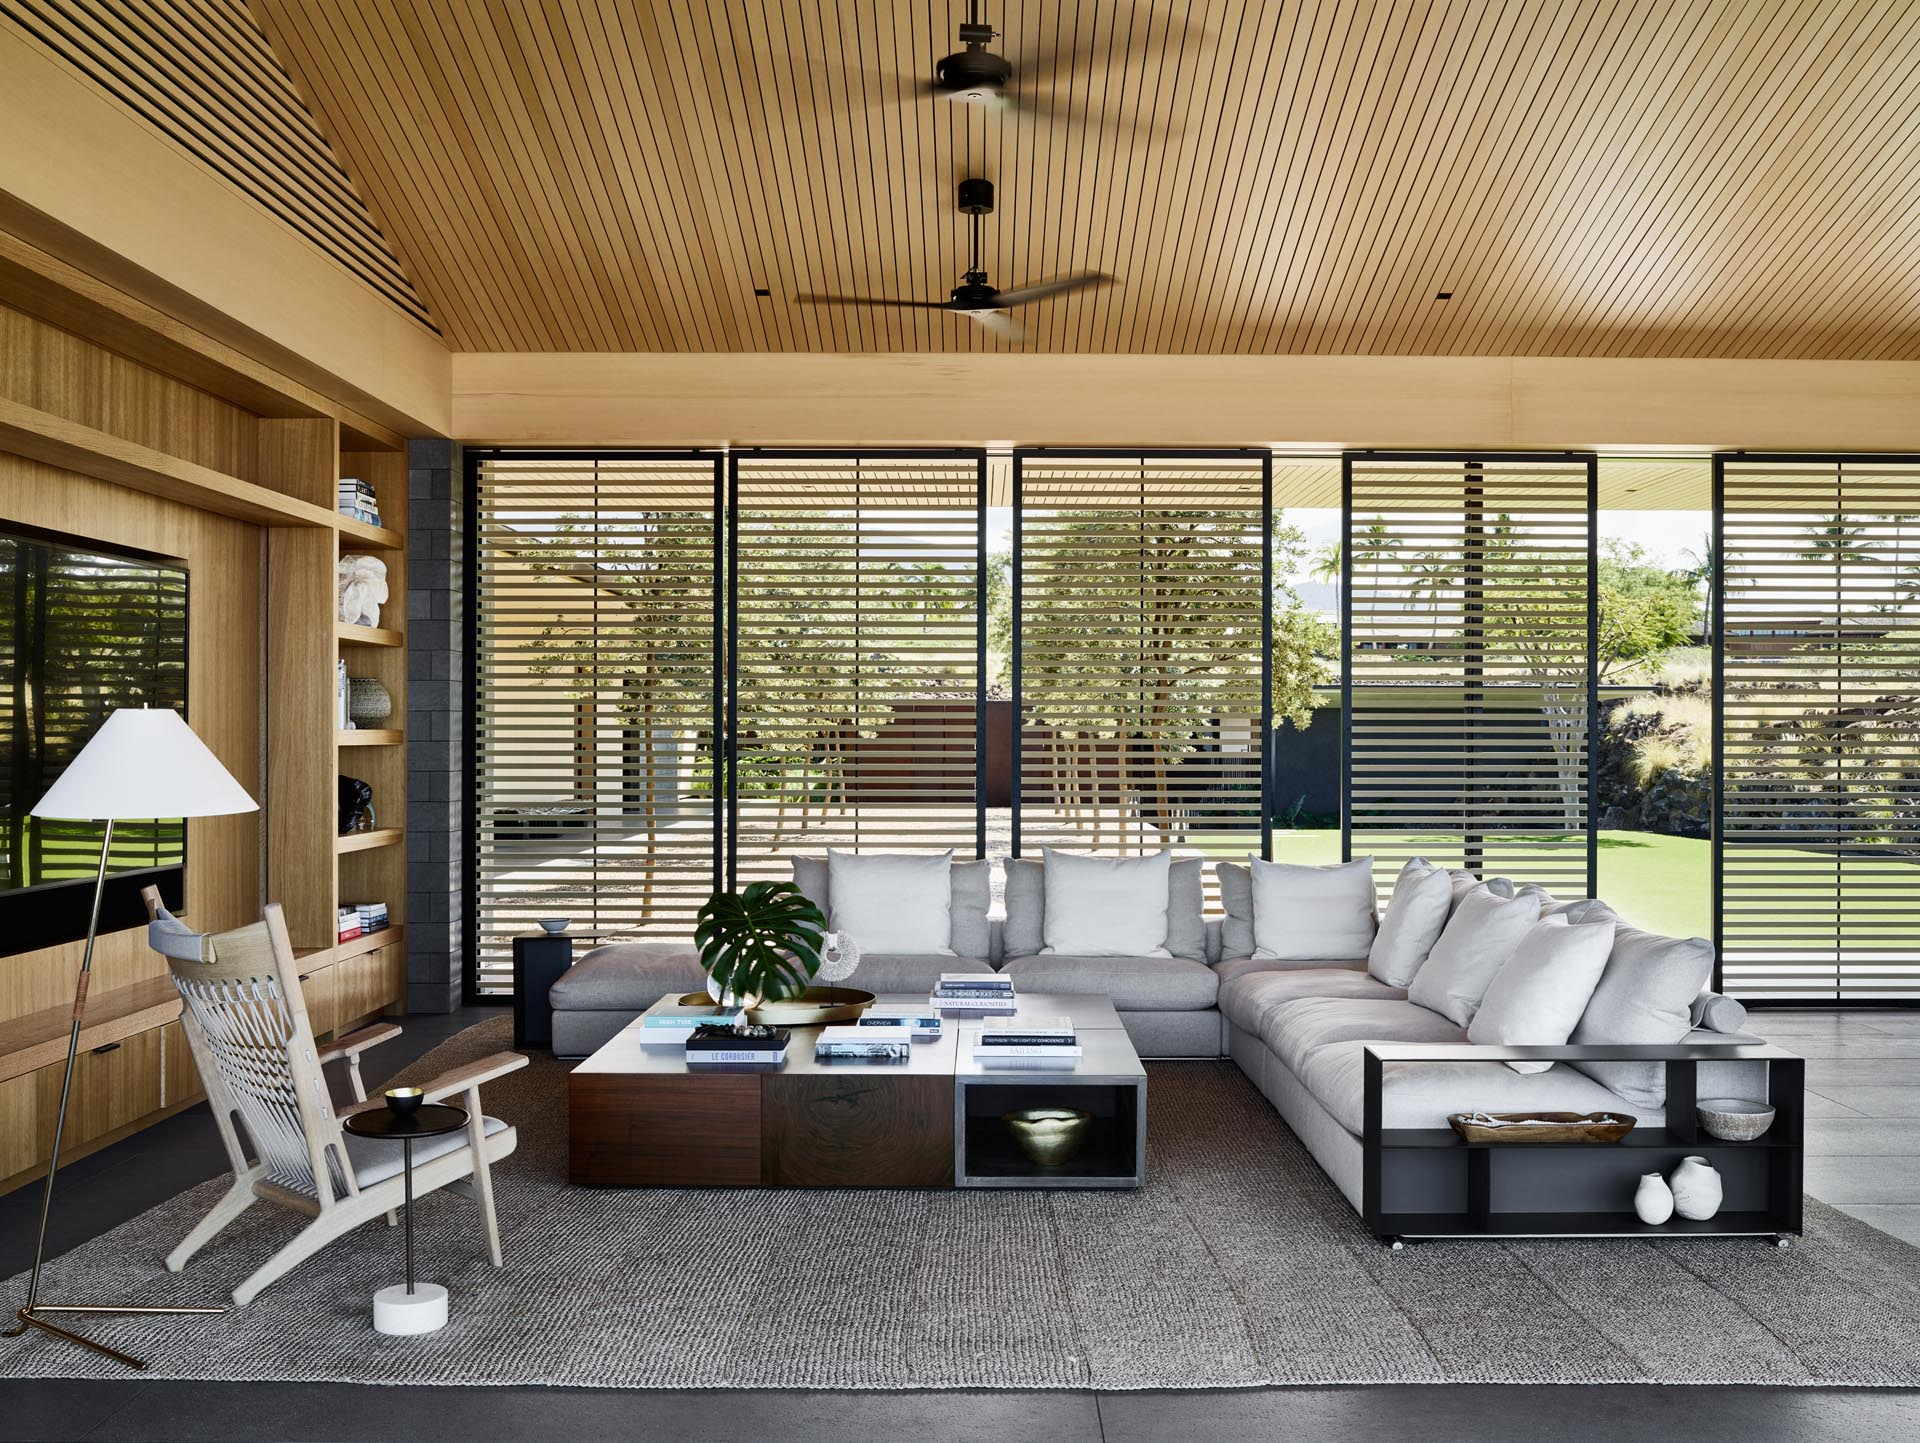 Screens provide shade from the sun in the living room.